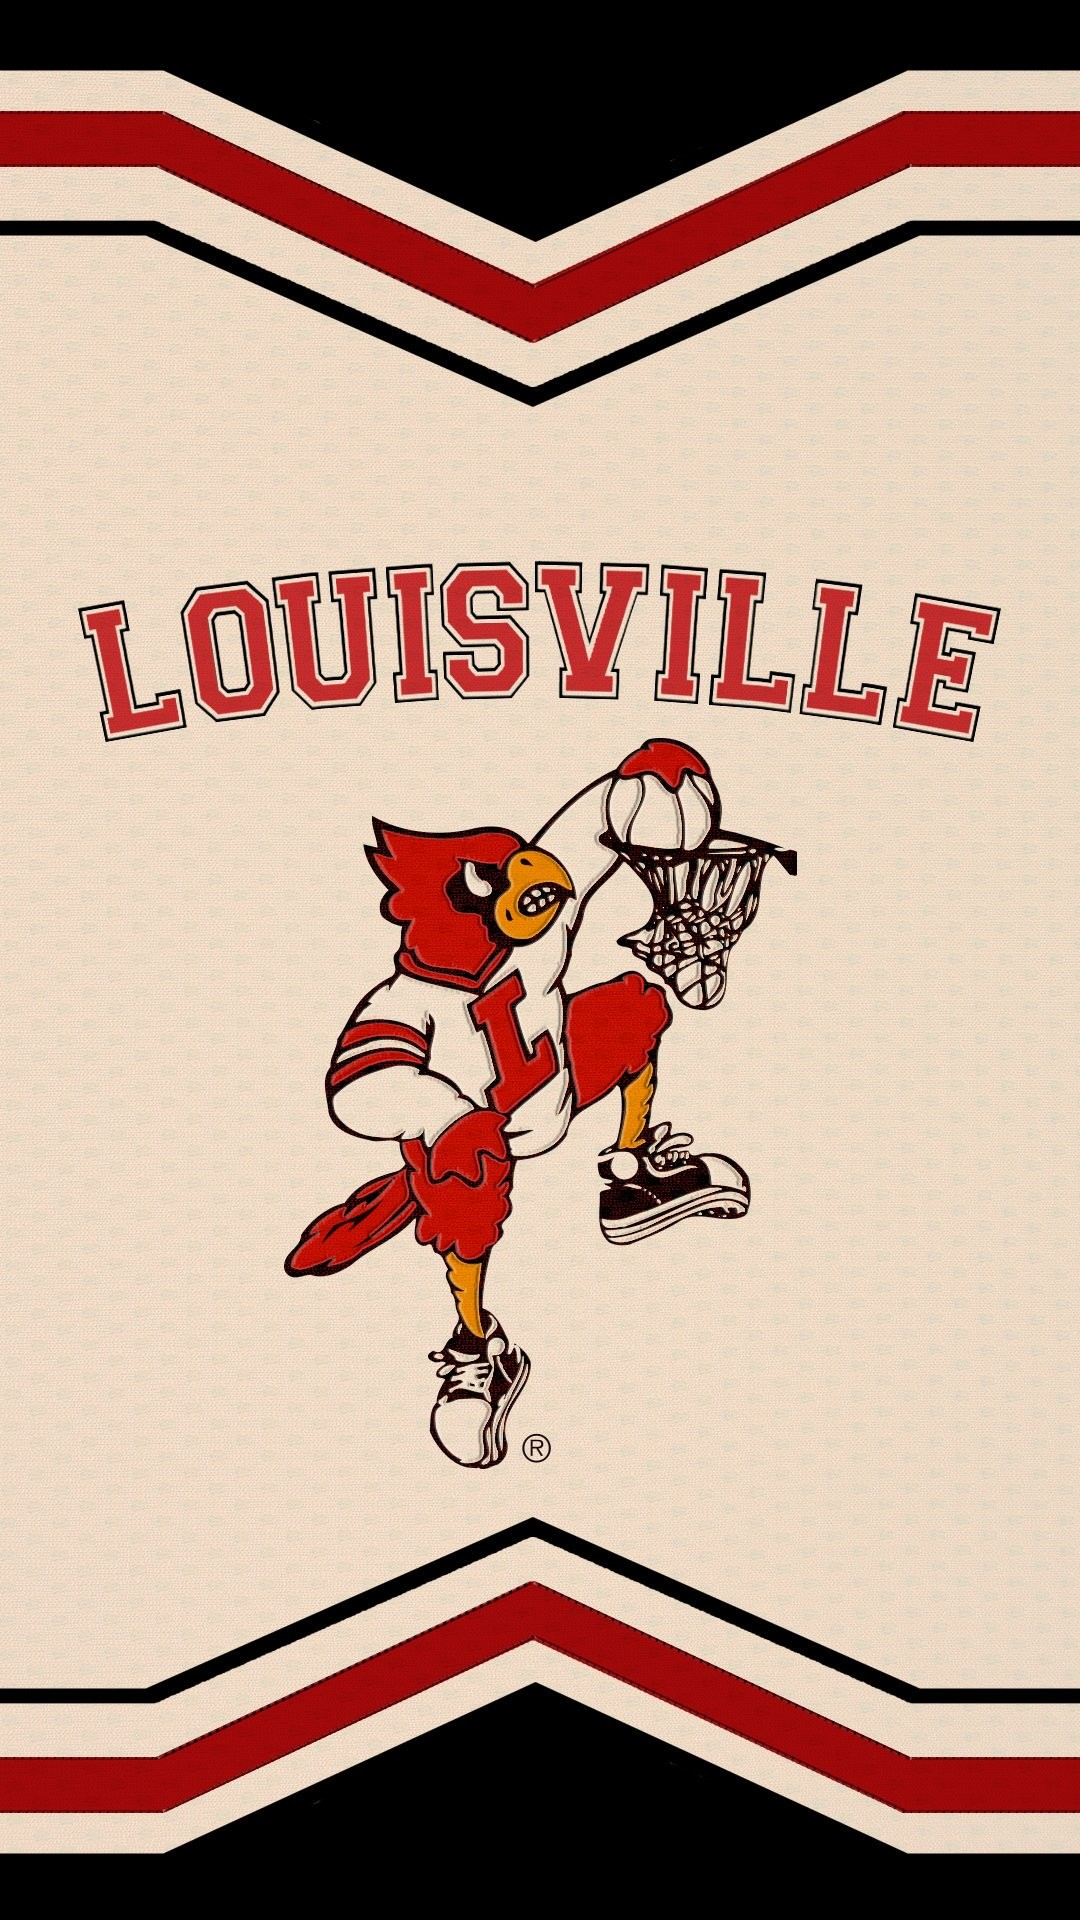 1080x1920 Louisville BasketballVerified account